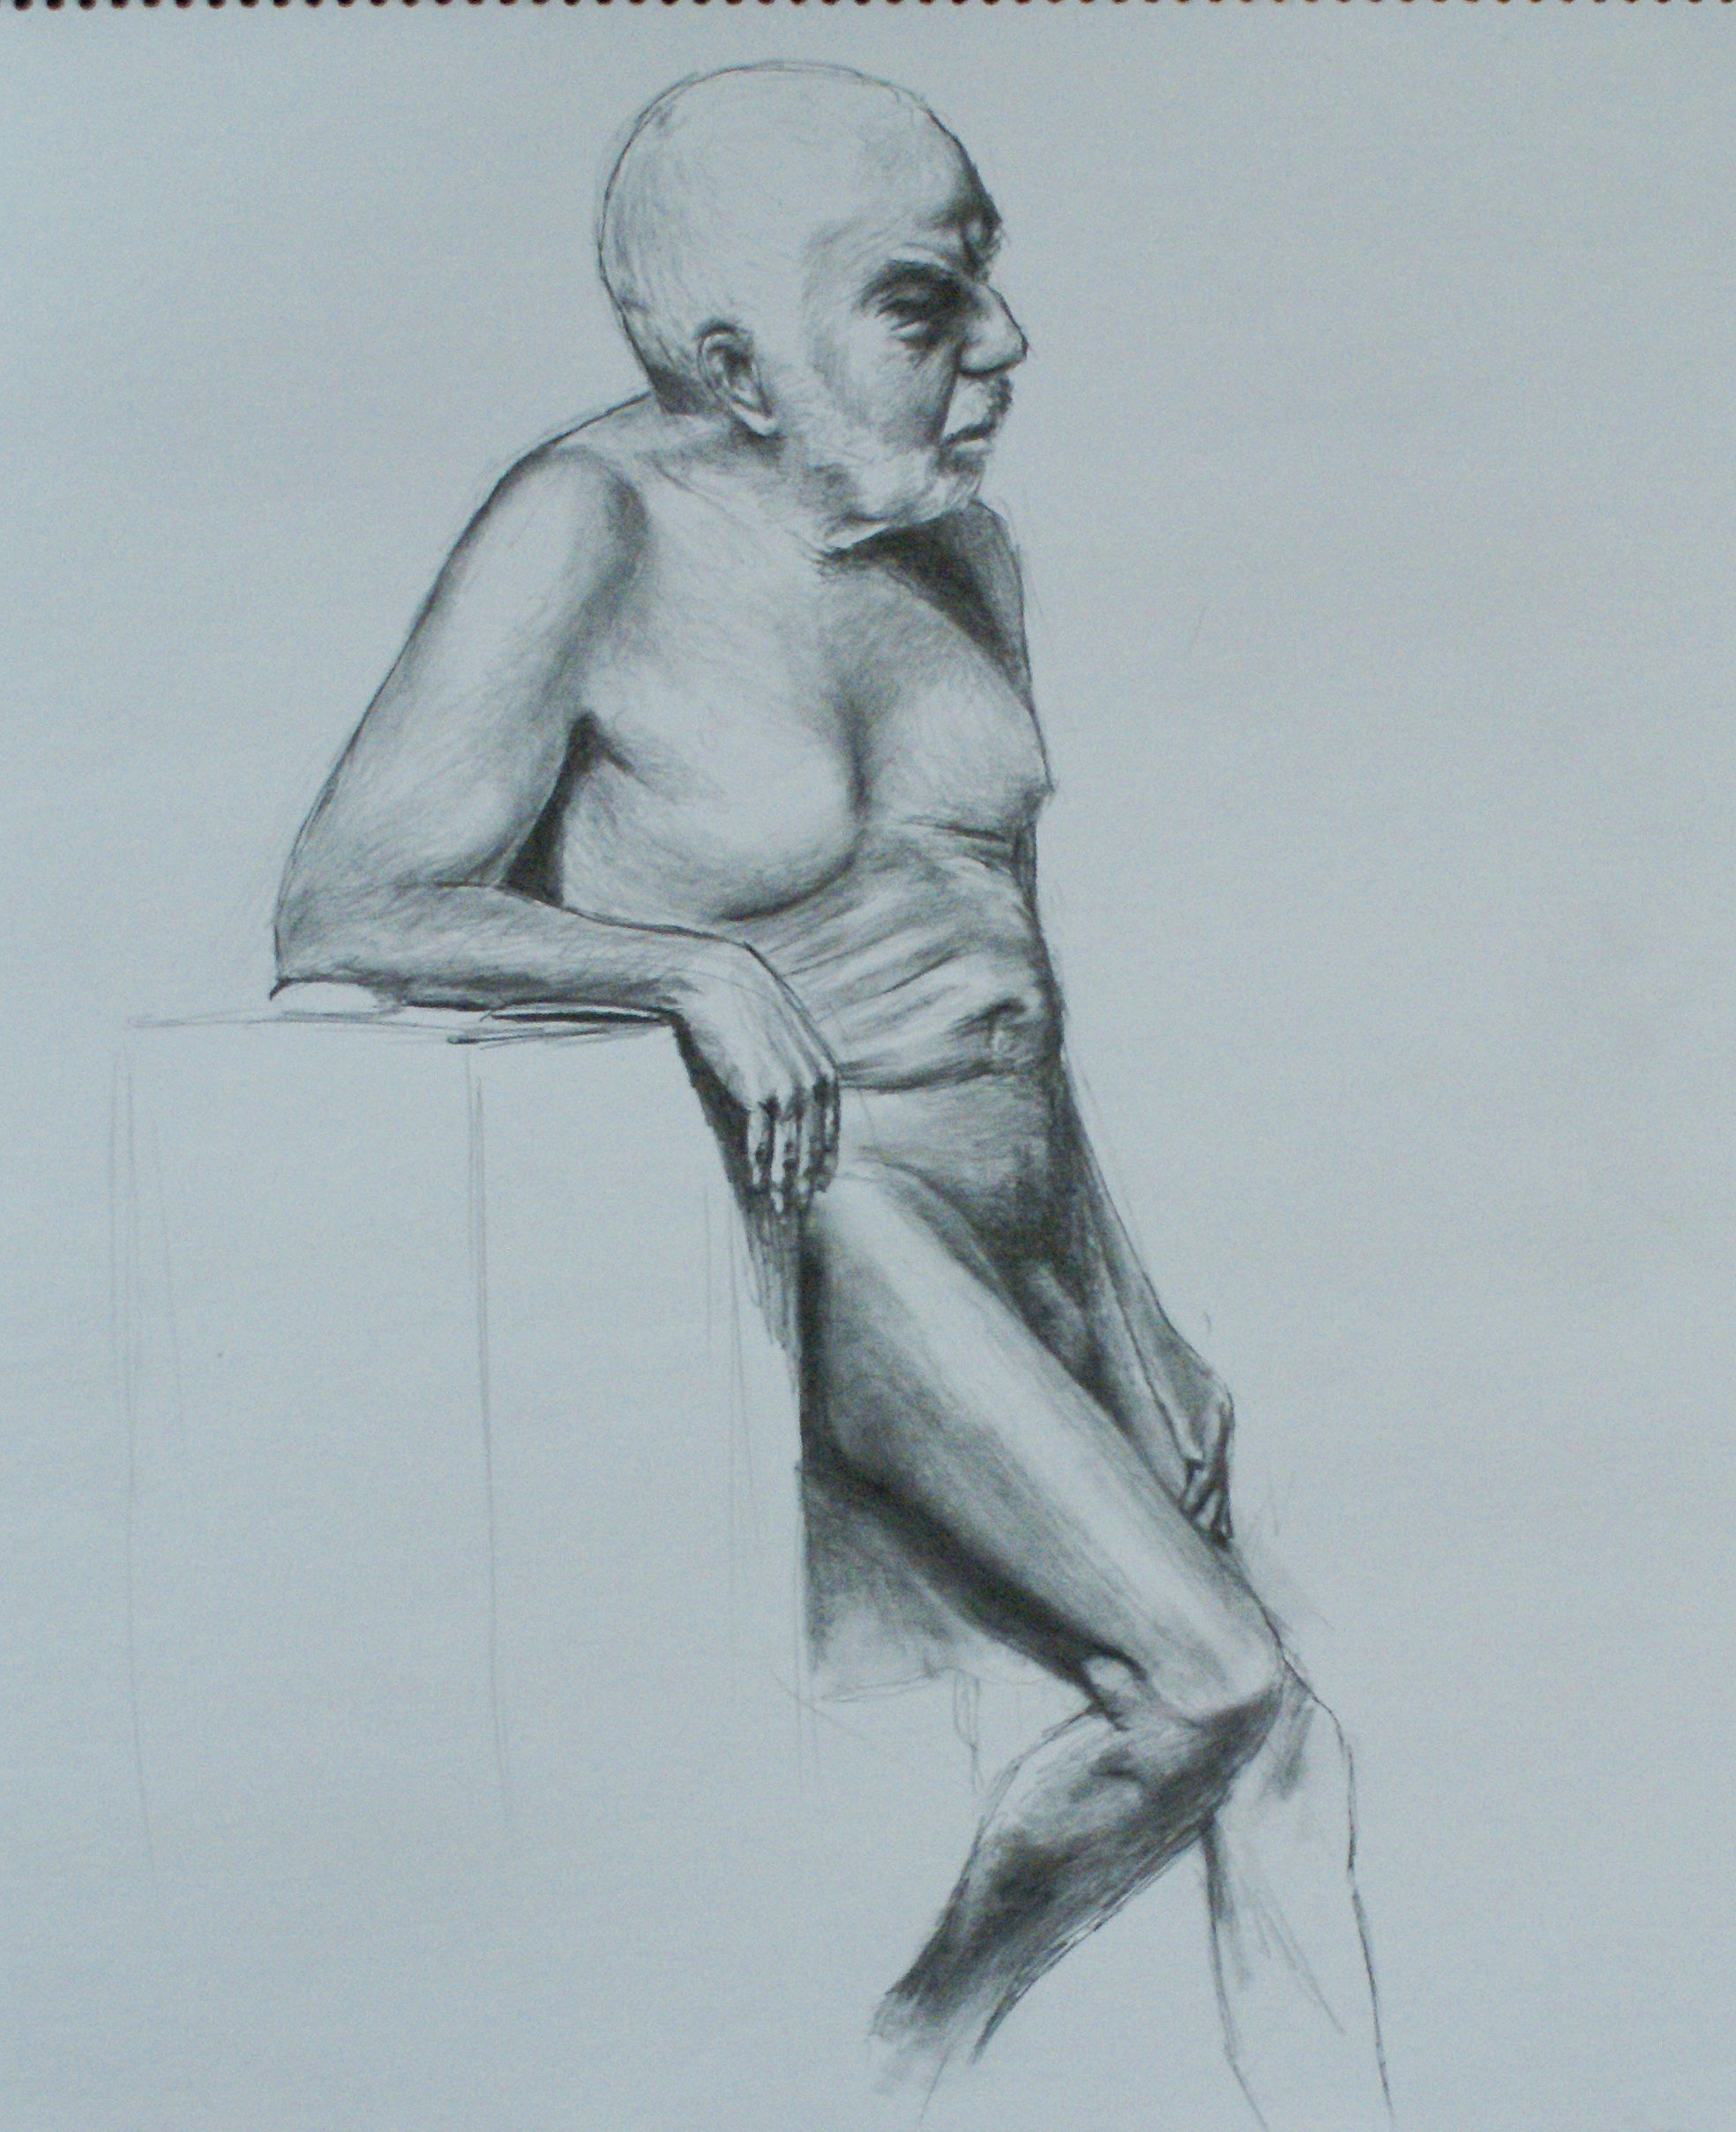 David Merrique- Anatomy and Figure Drawing. Charcoal on paper 18 x 24 in.